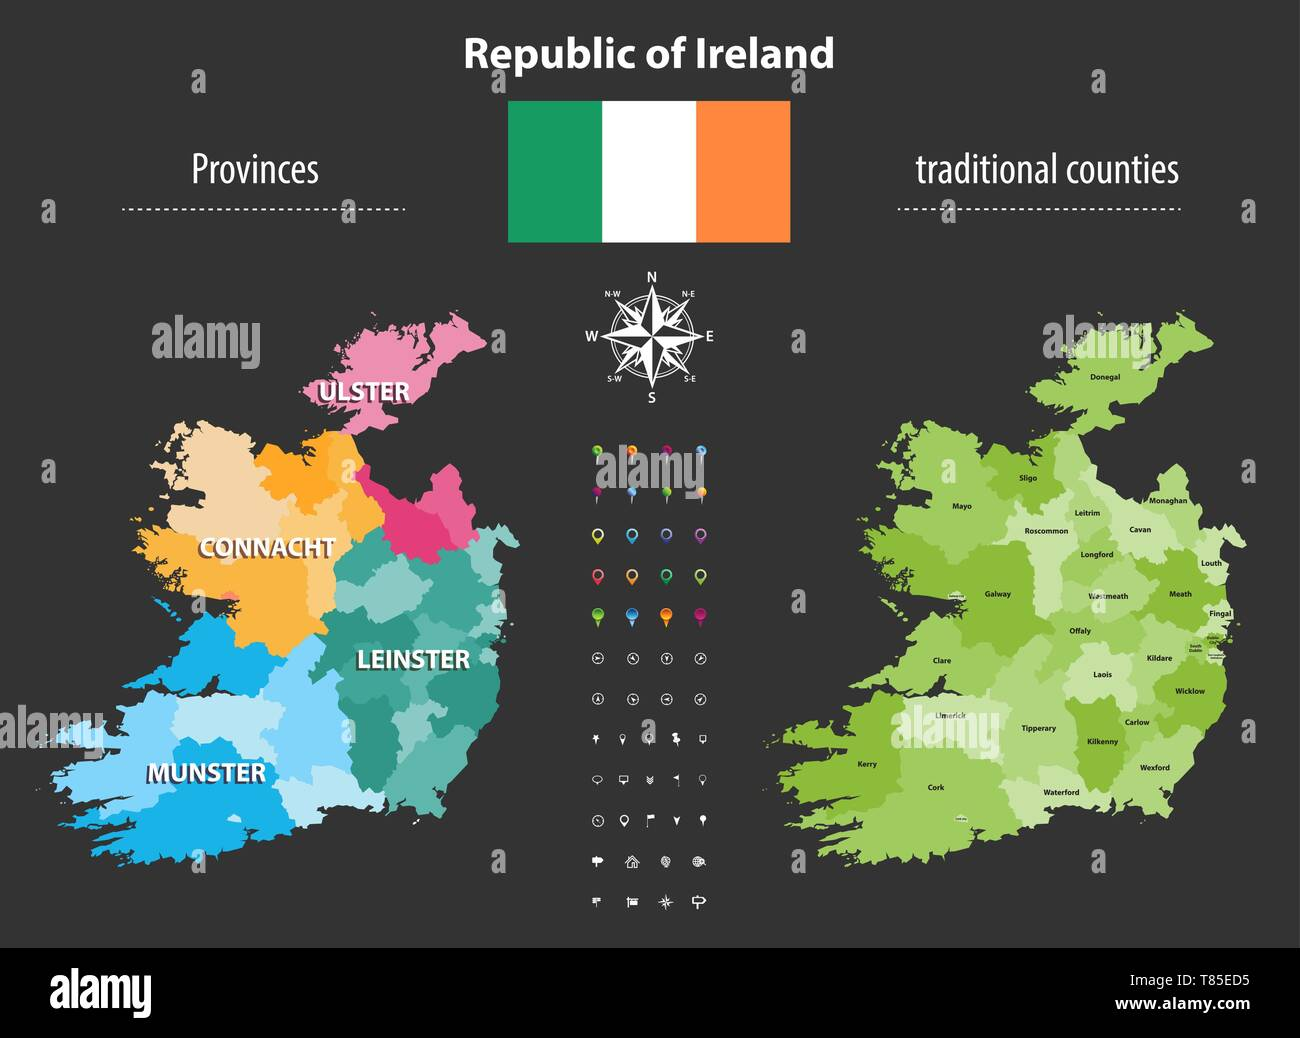 Map Of Ireland Provinces And Counties.Republic Of Ireland Provinces And Traditional Counties Vector Map